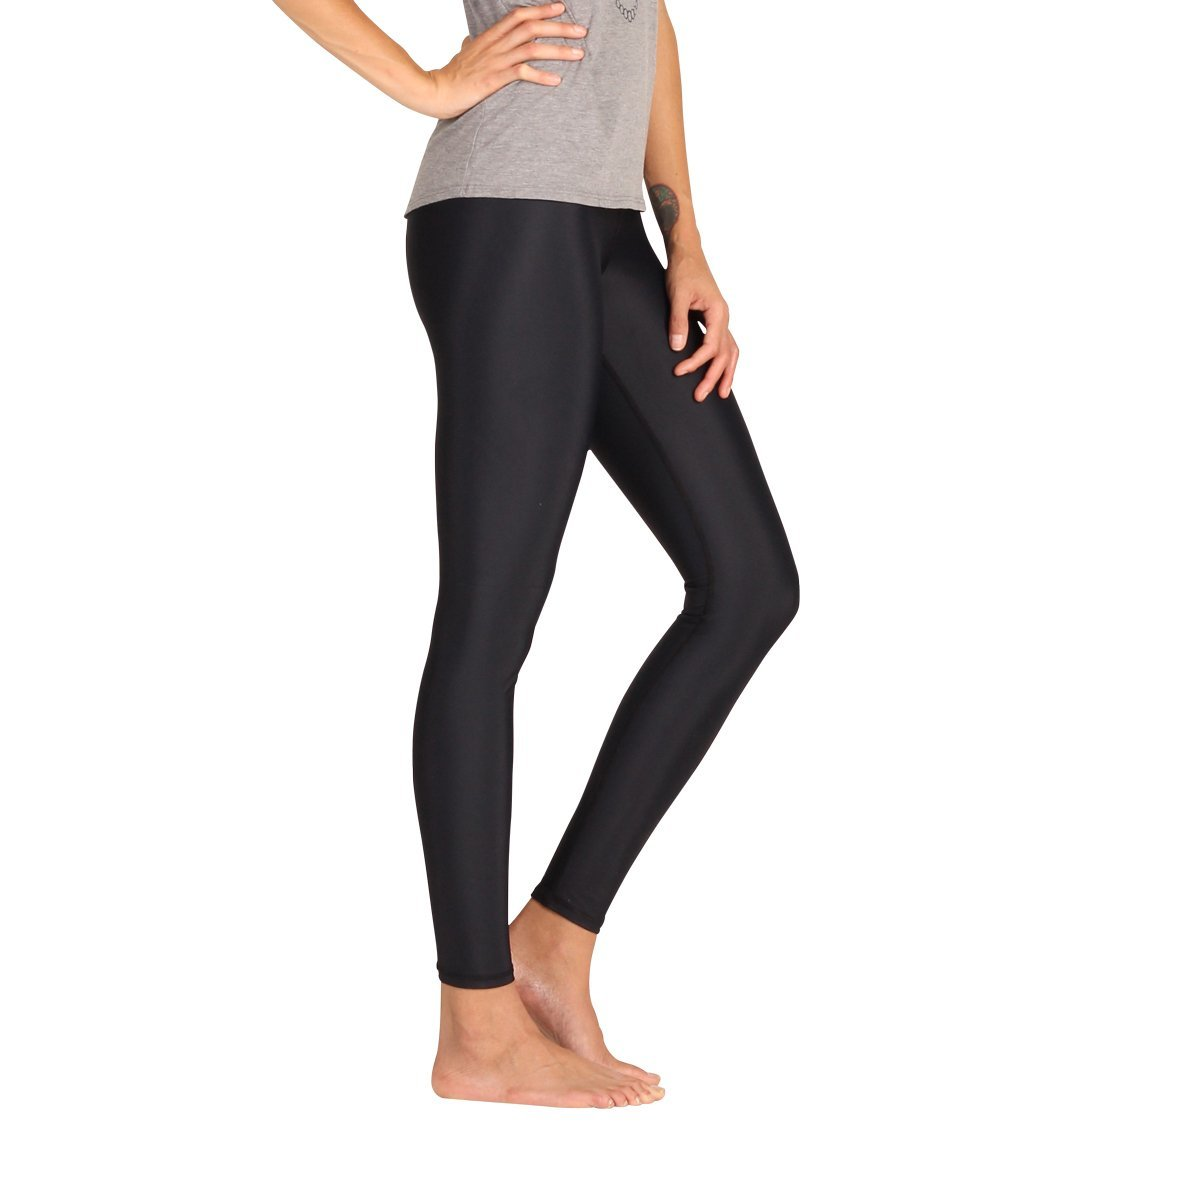 Frida-grey-right1_basically-perfect-leggings.jpg